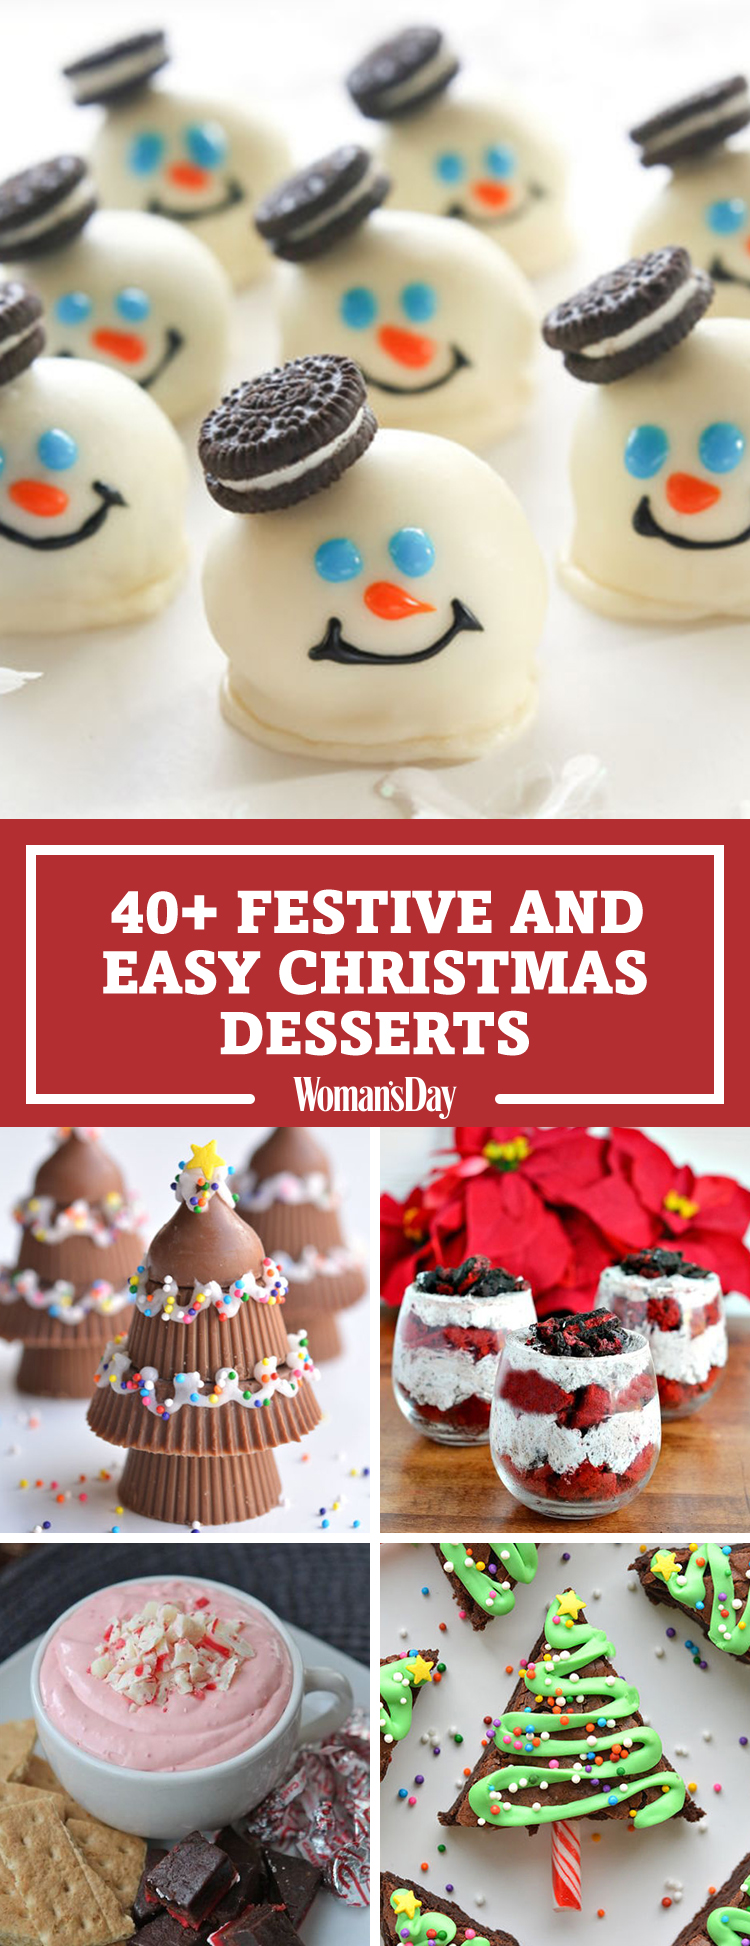 57 easy christmas dessert recipes best ideas for fun